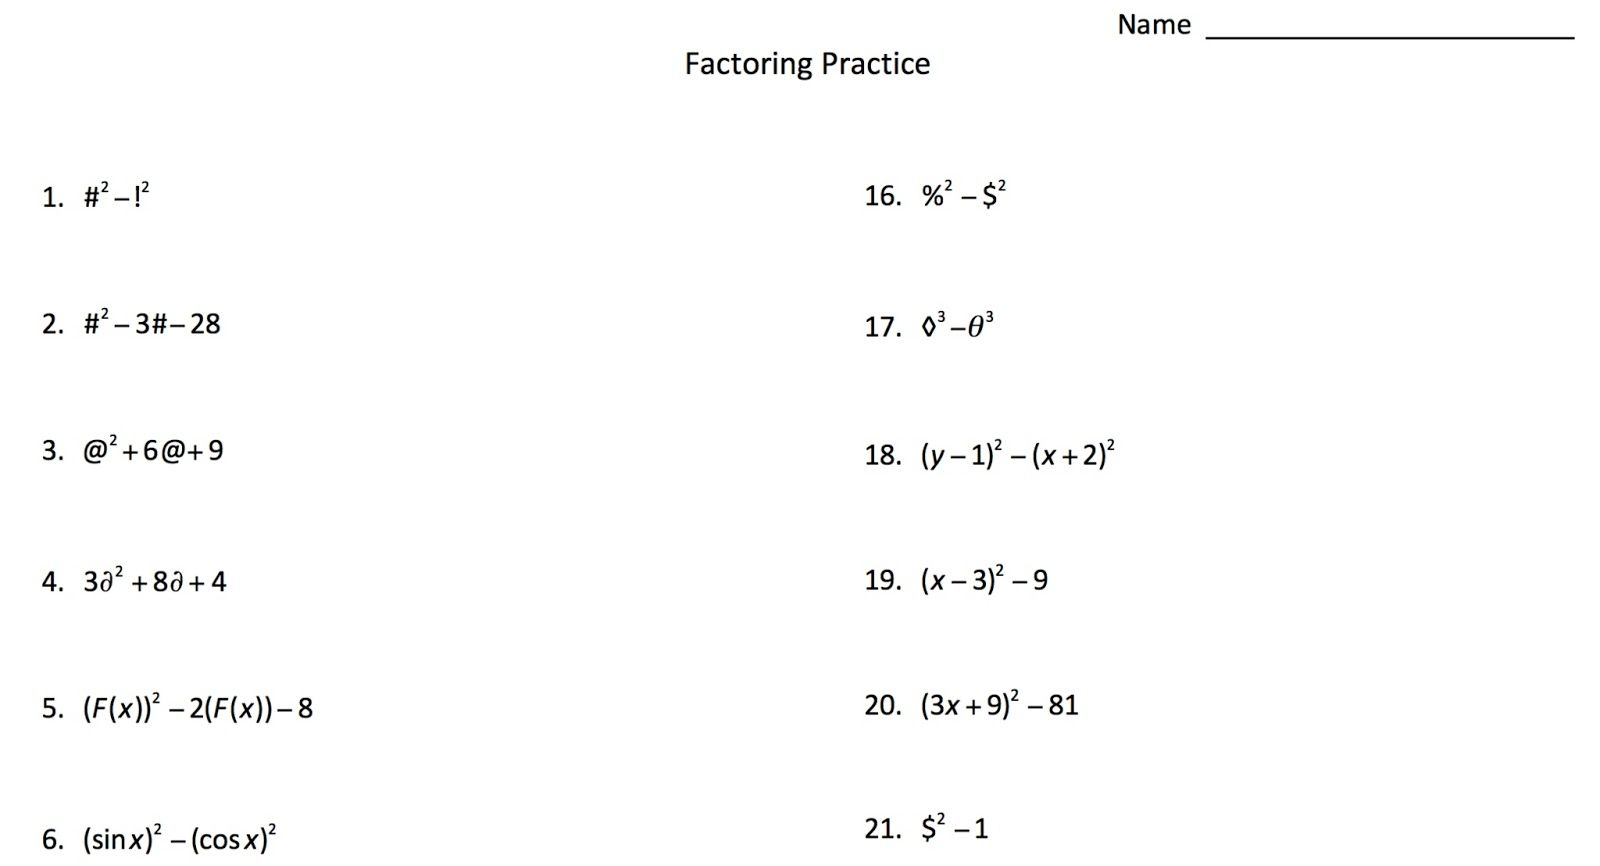 Factoring With Symbols Using Symbols Instead Of Numbers To Help Students See The Factoring Patterns Mrseteac Algebra Algebra Worksheets Geometry Worksheets